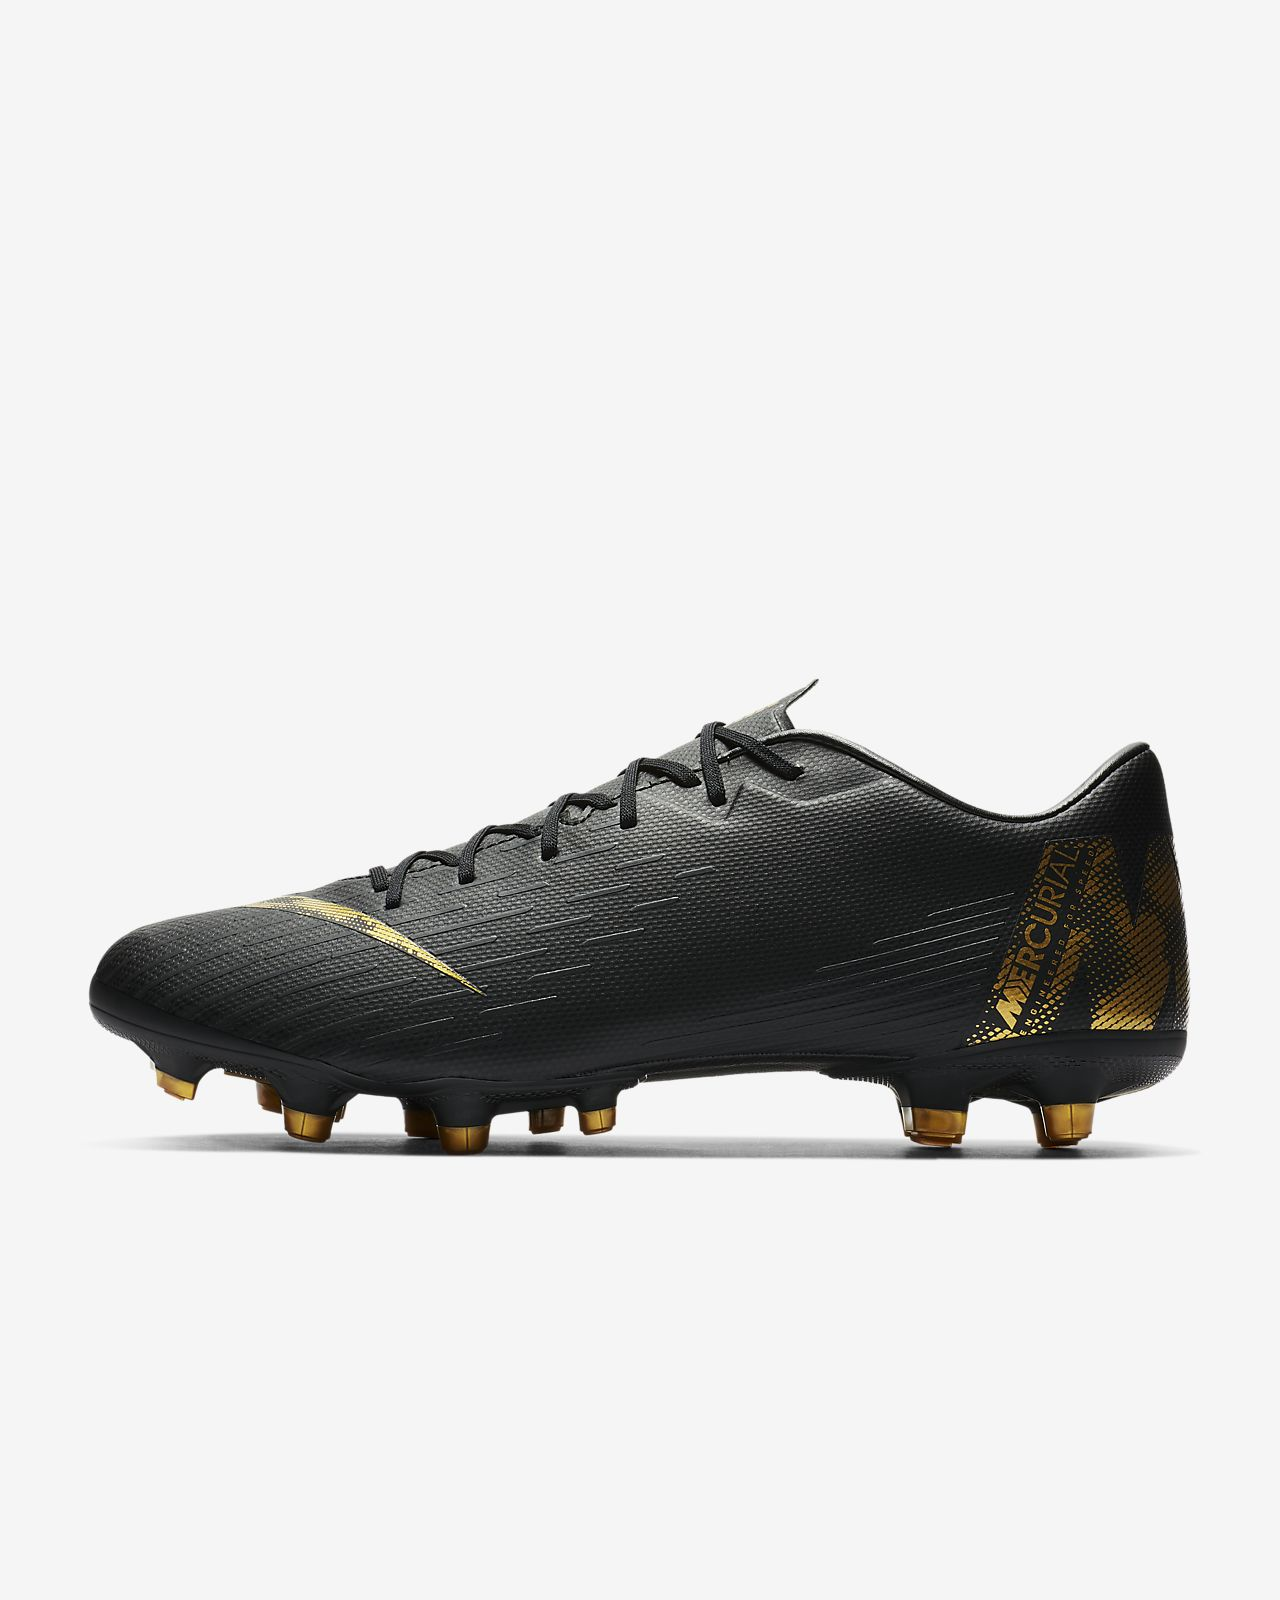 Nike Vapor 12 Academy MG Multi-Ground Football Boot